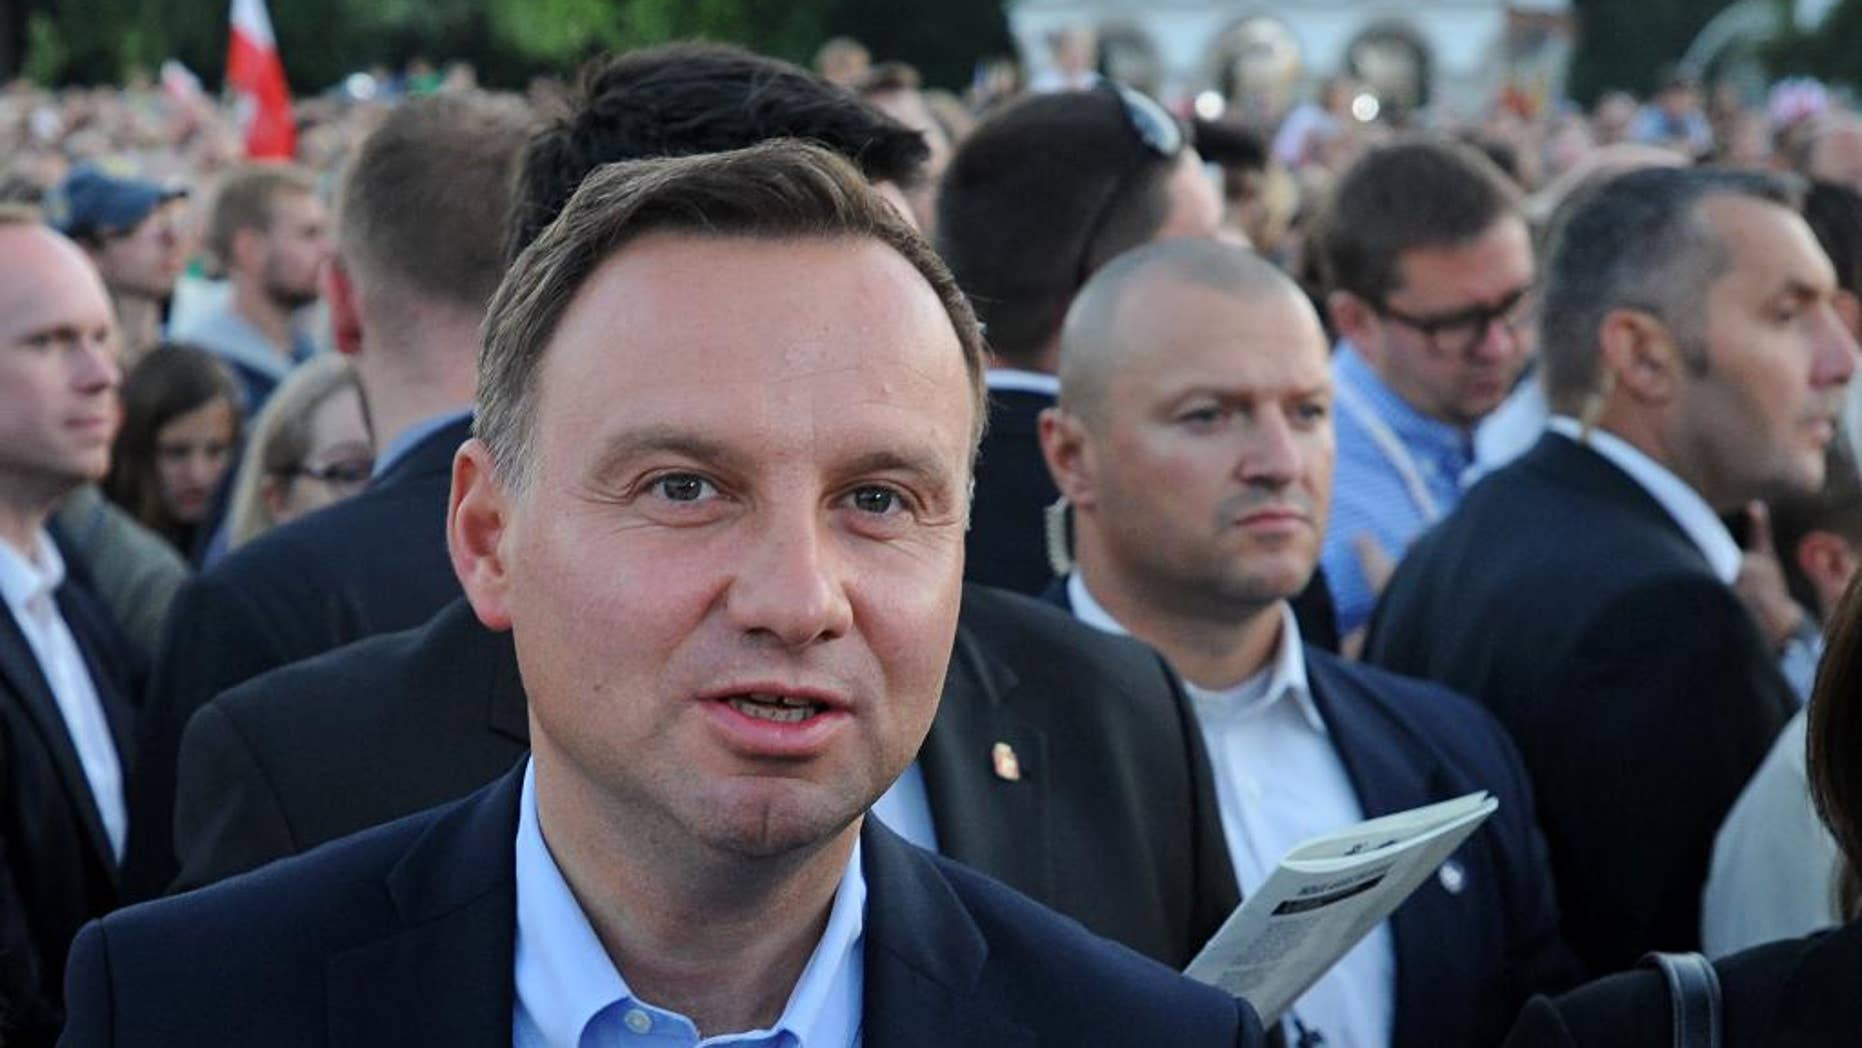 FILE - This Aug. 1, 2015, file photo shows Polish President-elect, Andrzej Duda at the Pilsudski square on the 71st anniversary of the insurgency, in Warsaw, Poland. It's been a dream of some Polish leaders for nearly a century: an alliance of Eastern European countries running from the Baltic Sea down to the Black Sea that would keep Russia at bay. Poland's conservative new president, Duda, who took office two weeks ago, has already signaled that building such an alliance under Warsaw's leadership will be a priority of his presidency. (AP Photo/Alik Keplicz, File)